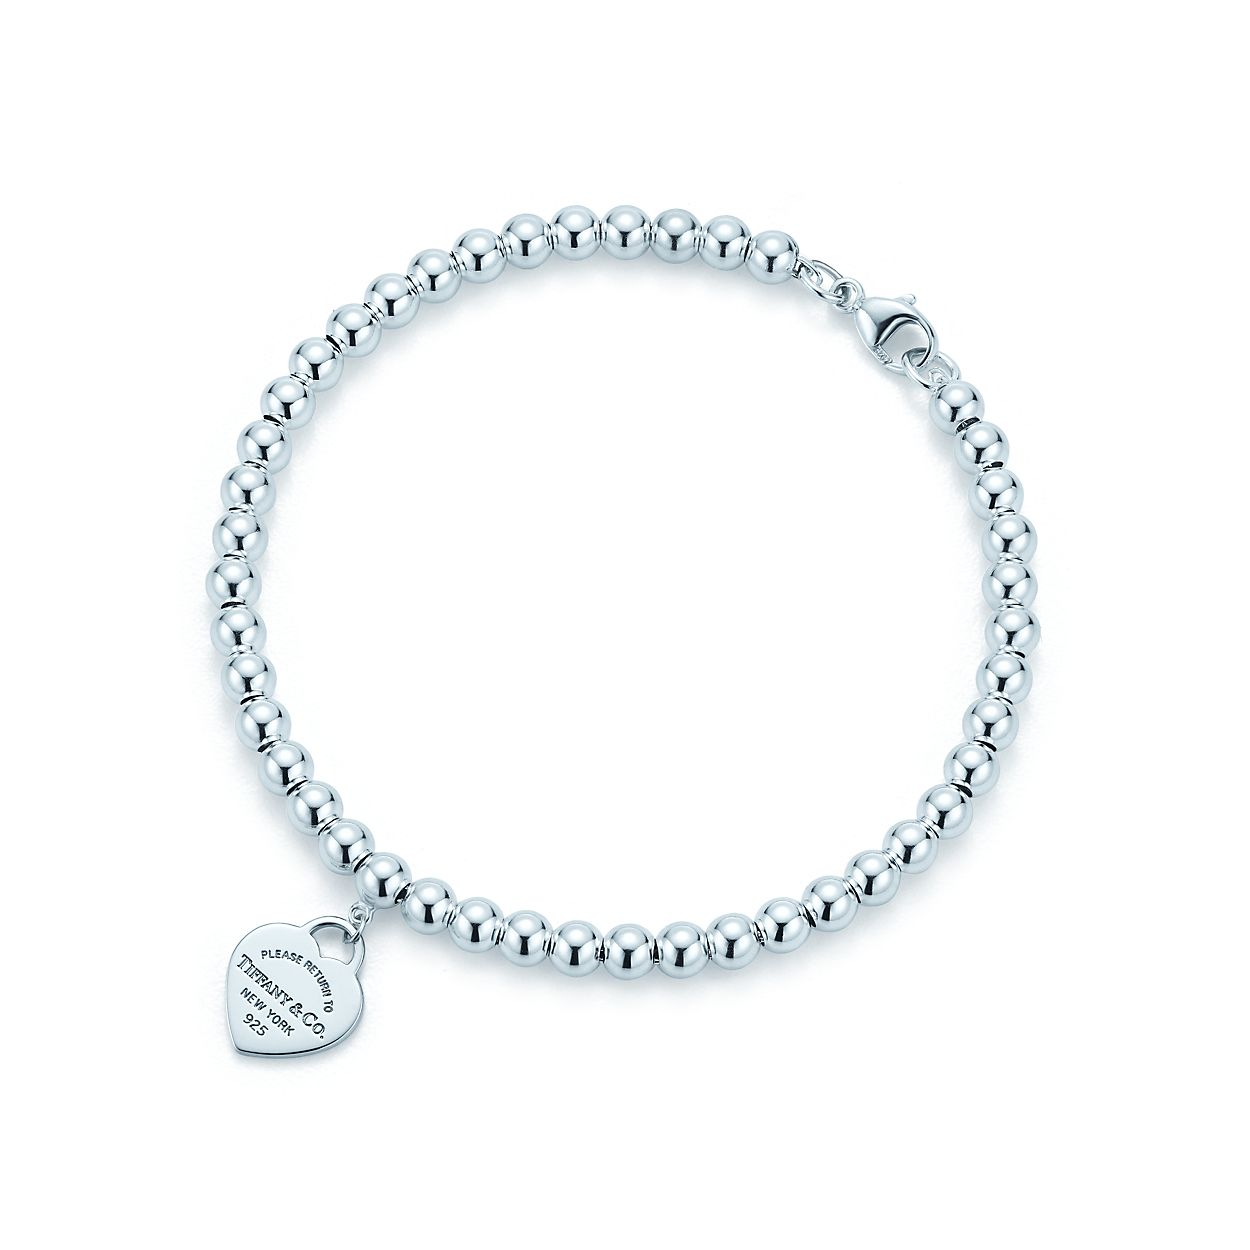 Return to Tiffany mini heart tag in sterling silver on a bead bracelet - Size 7 in Tiffany & Co. Neyc6c66V